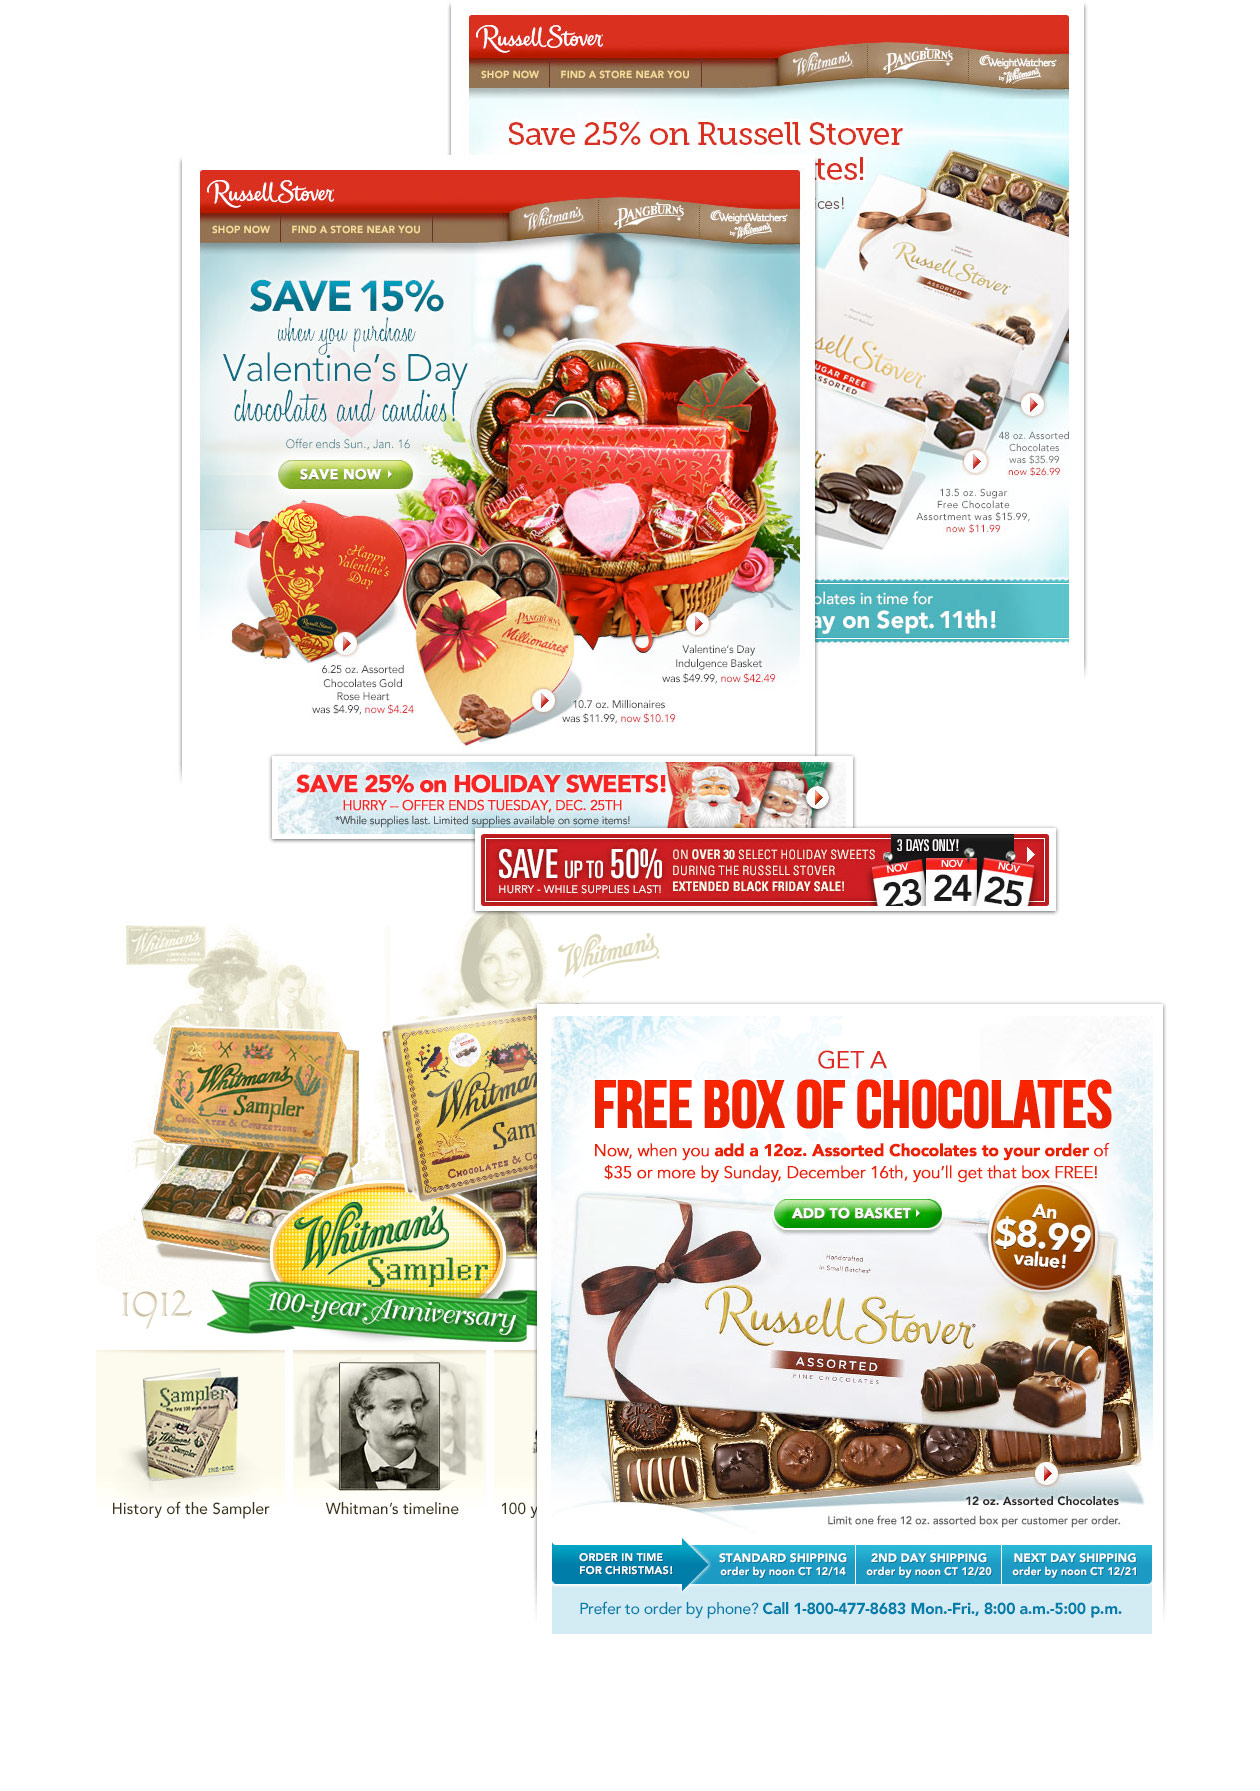 Russell Stover email and banner examples